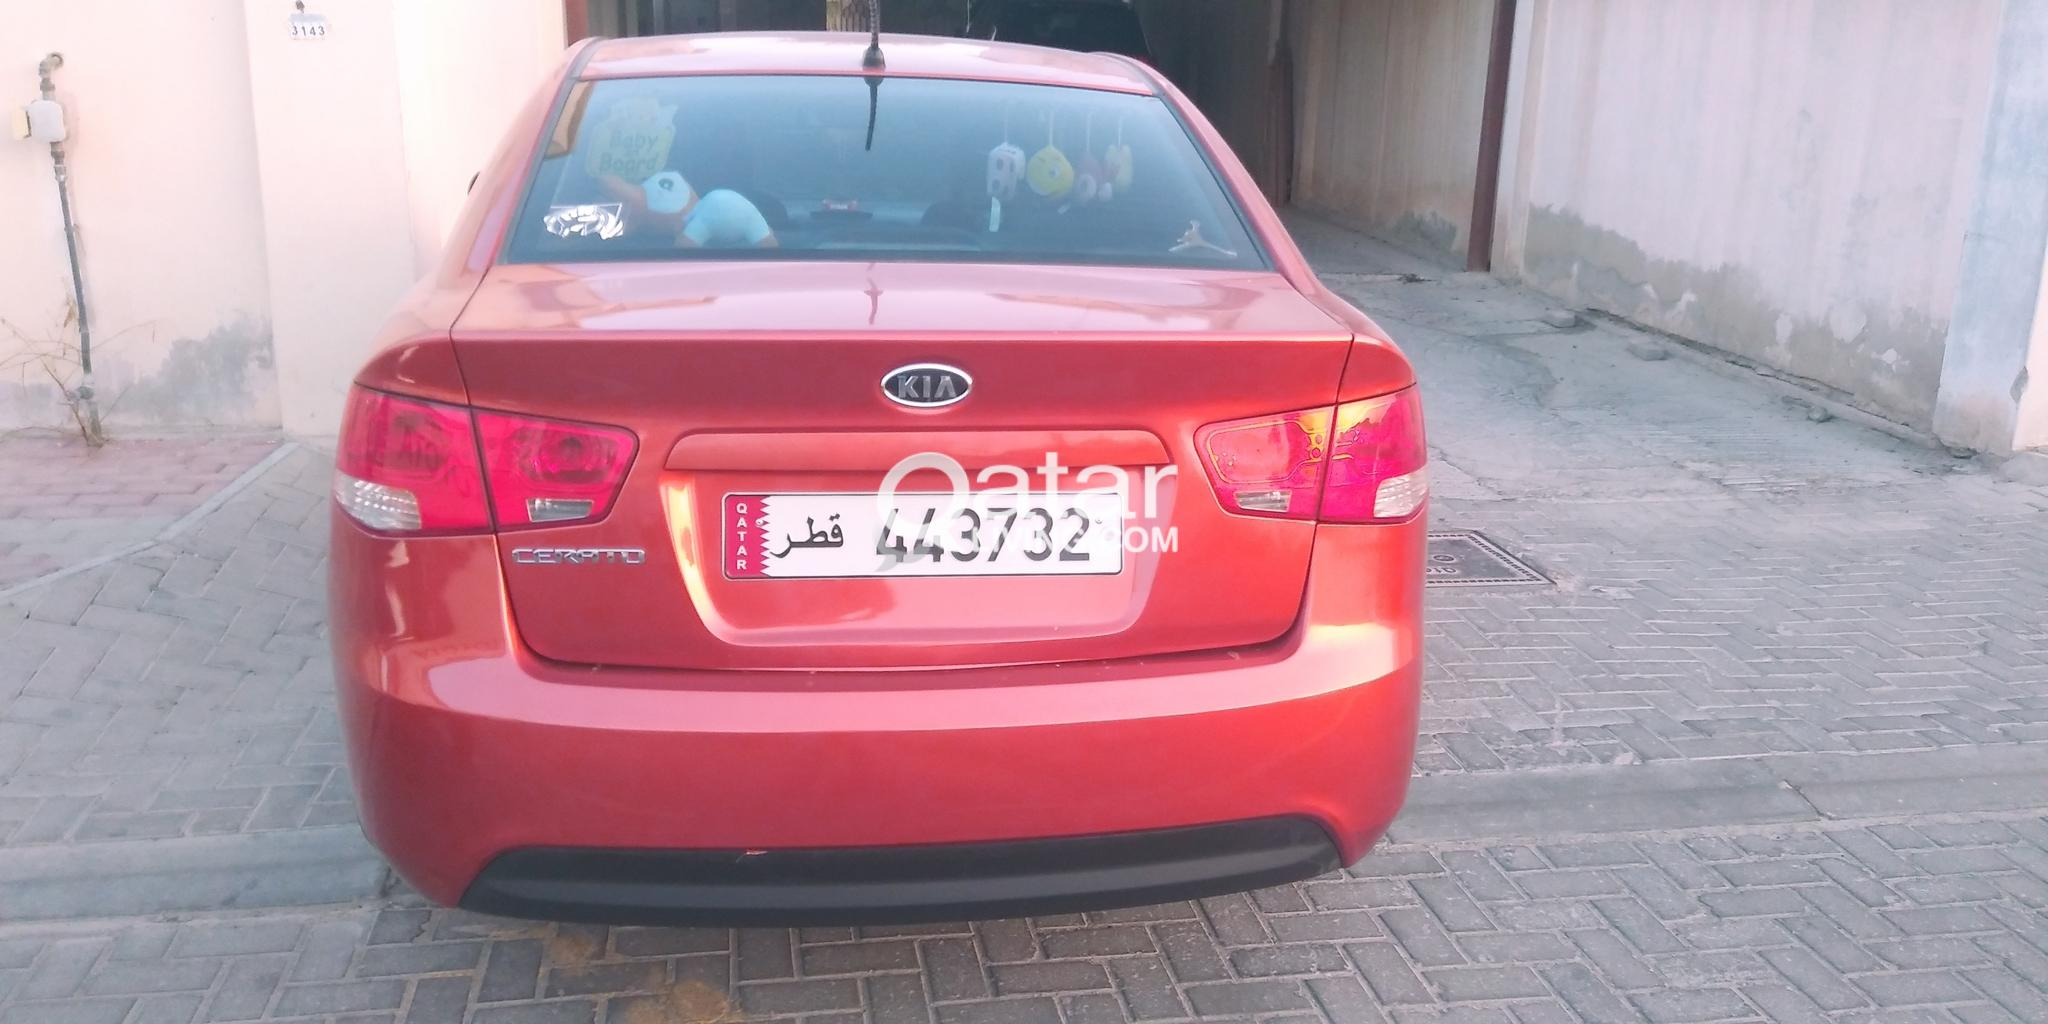 Kia Cerato 1.6 EX Copper Orange color ()